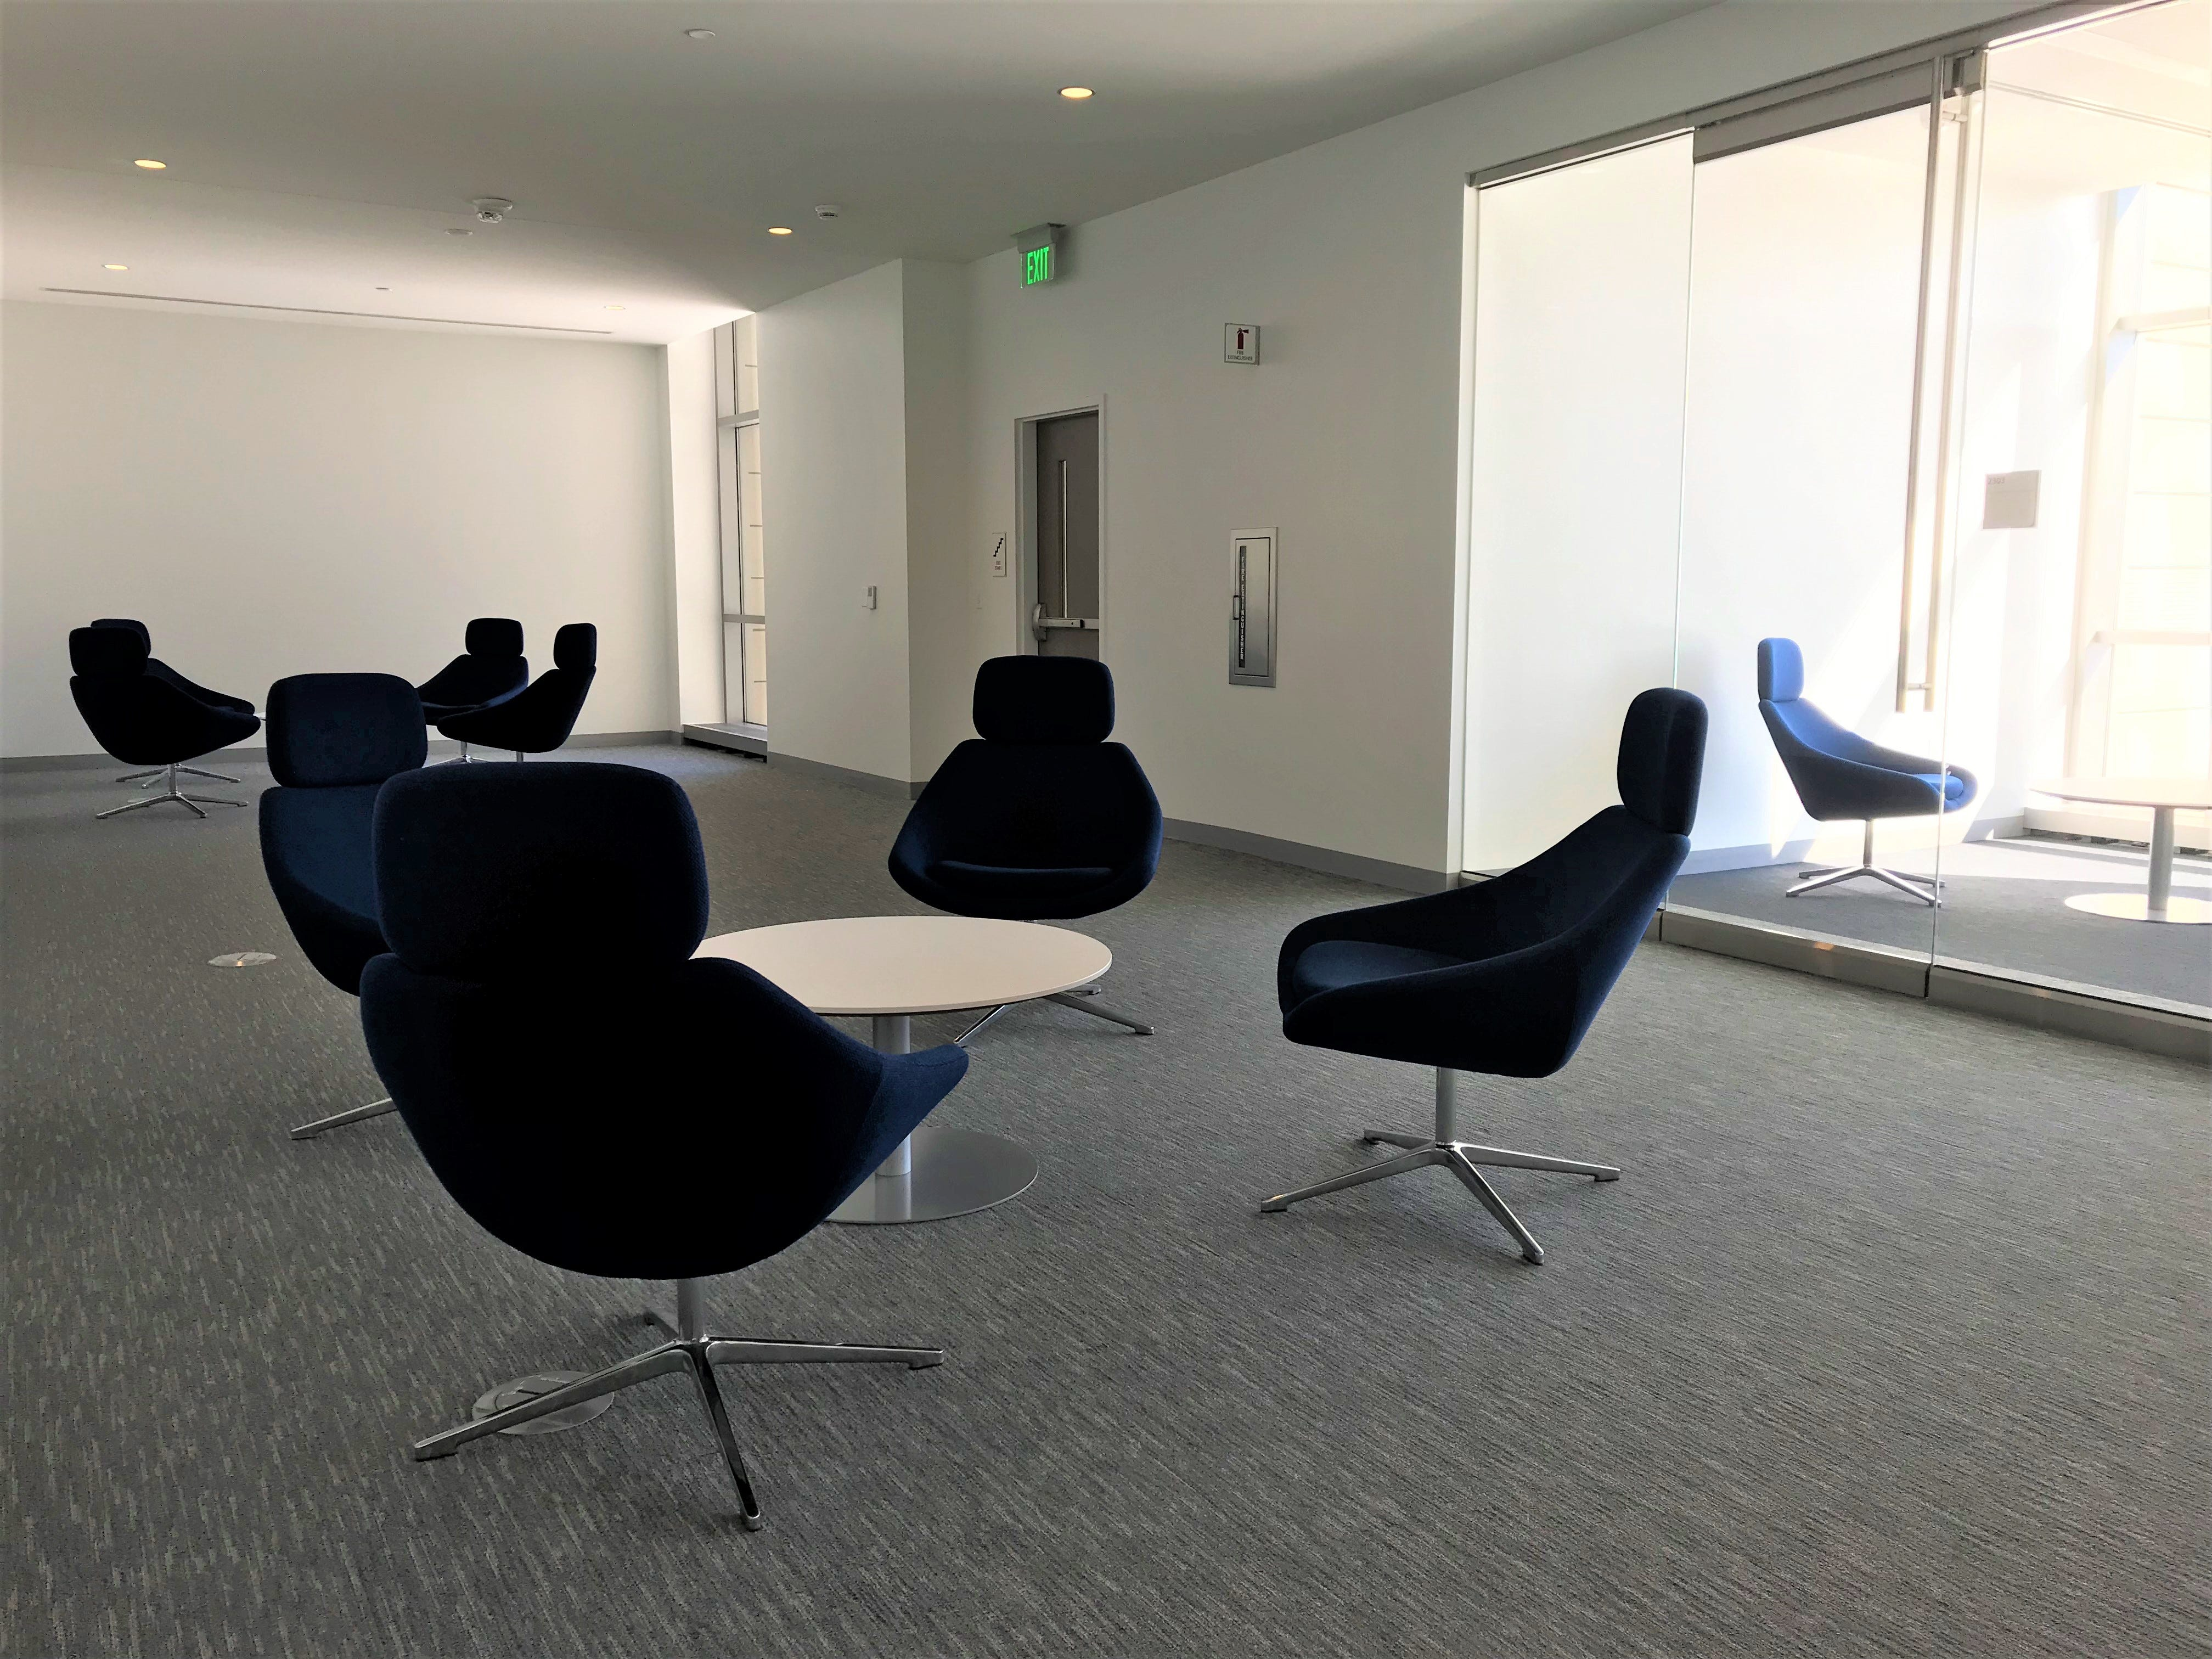 There are many spaces to collaborate in the new Sentry Insurance building.